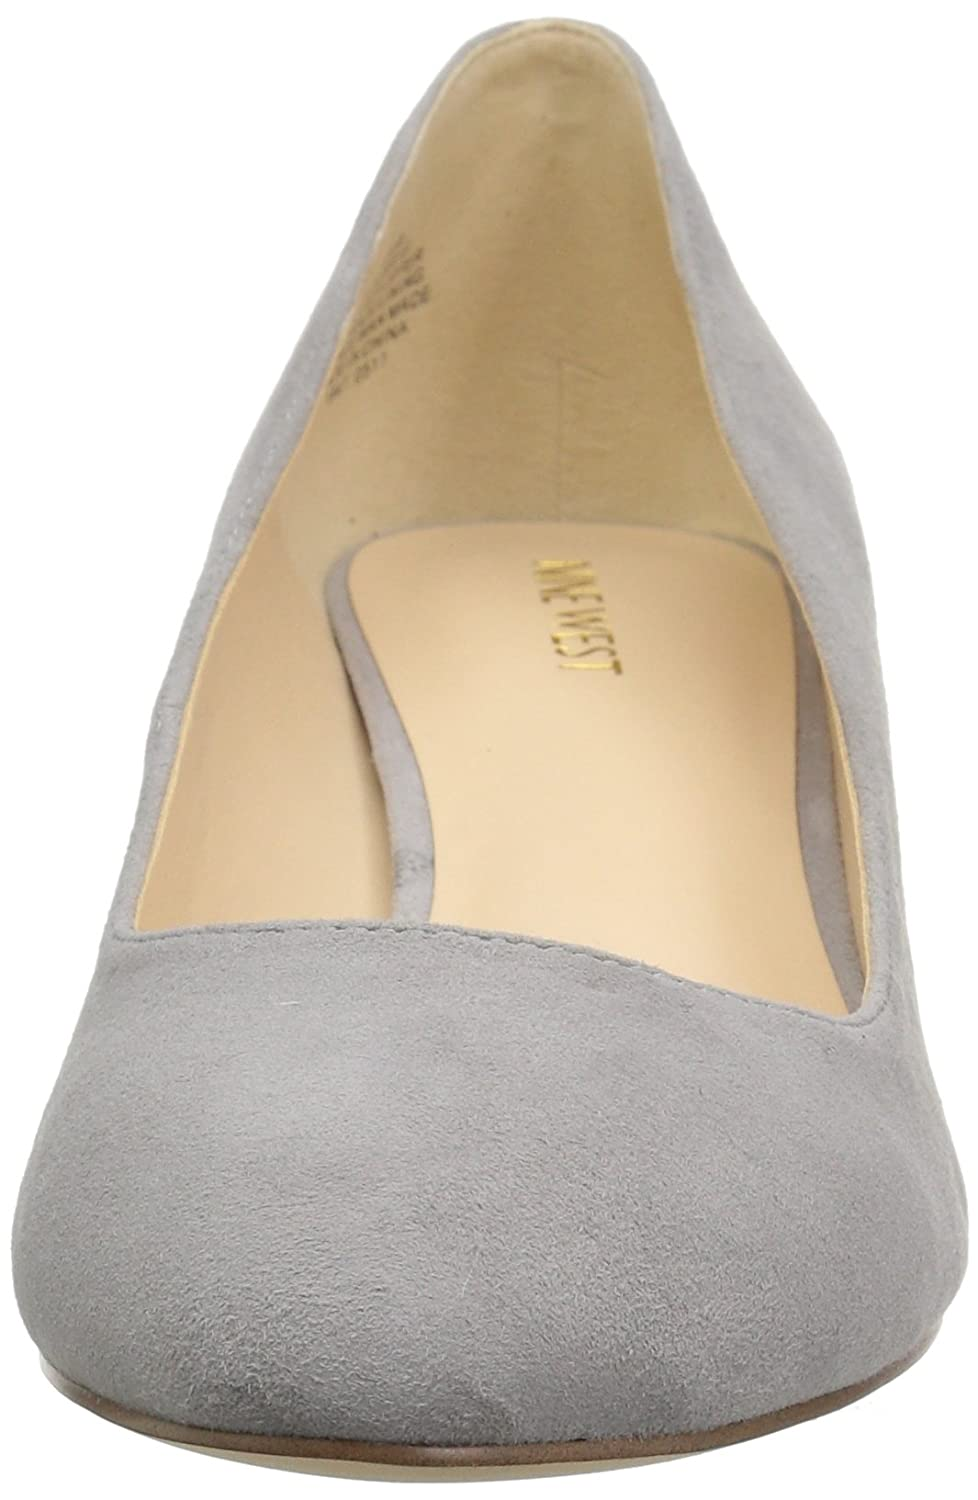 Nine 9.5 West Women's Cerys Suede Pump B0725WR9MF 9.5 Nine B(M) US|Light Grey Suede 3b0c33